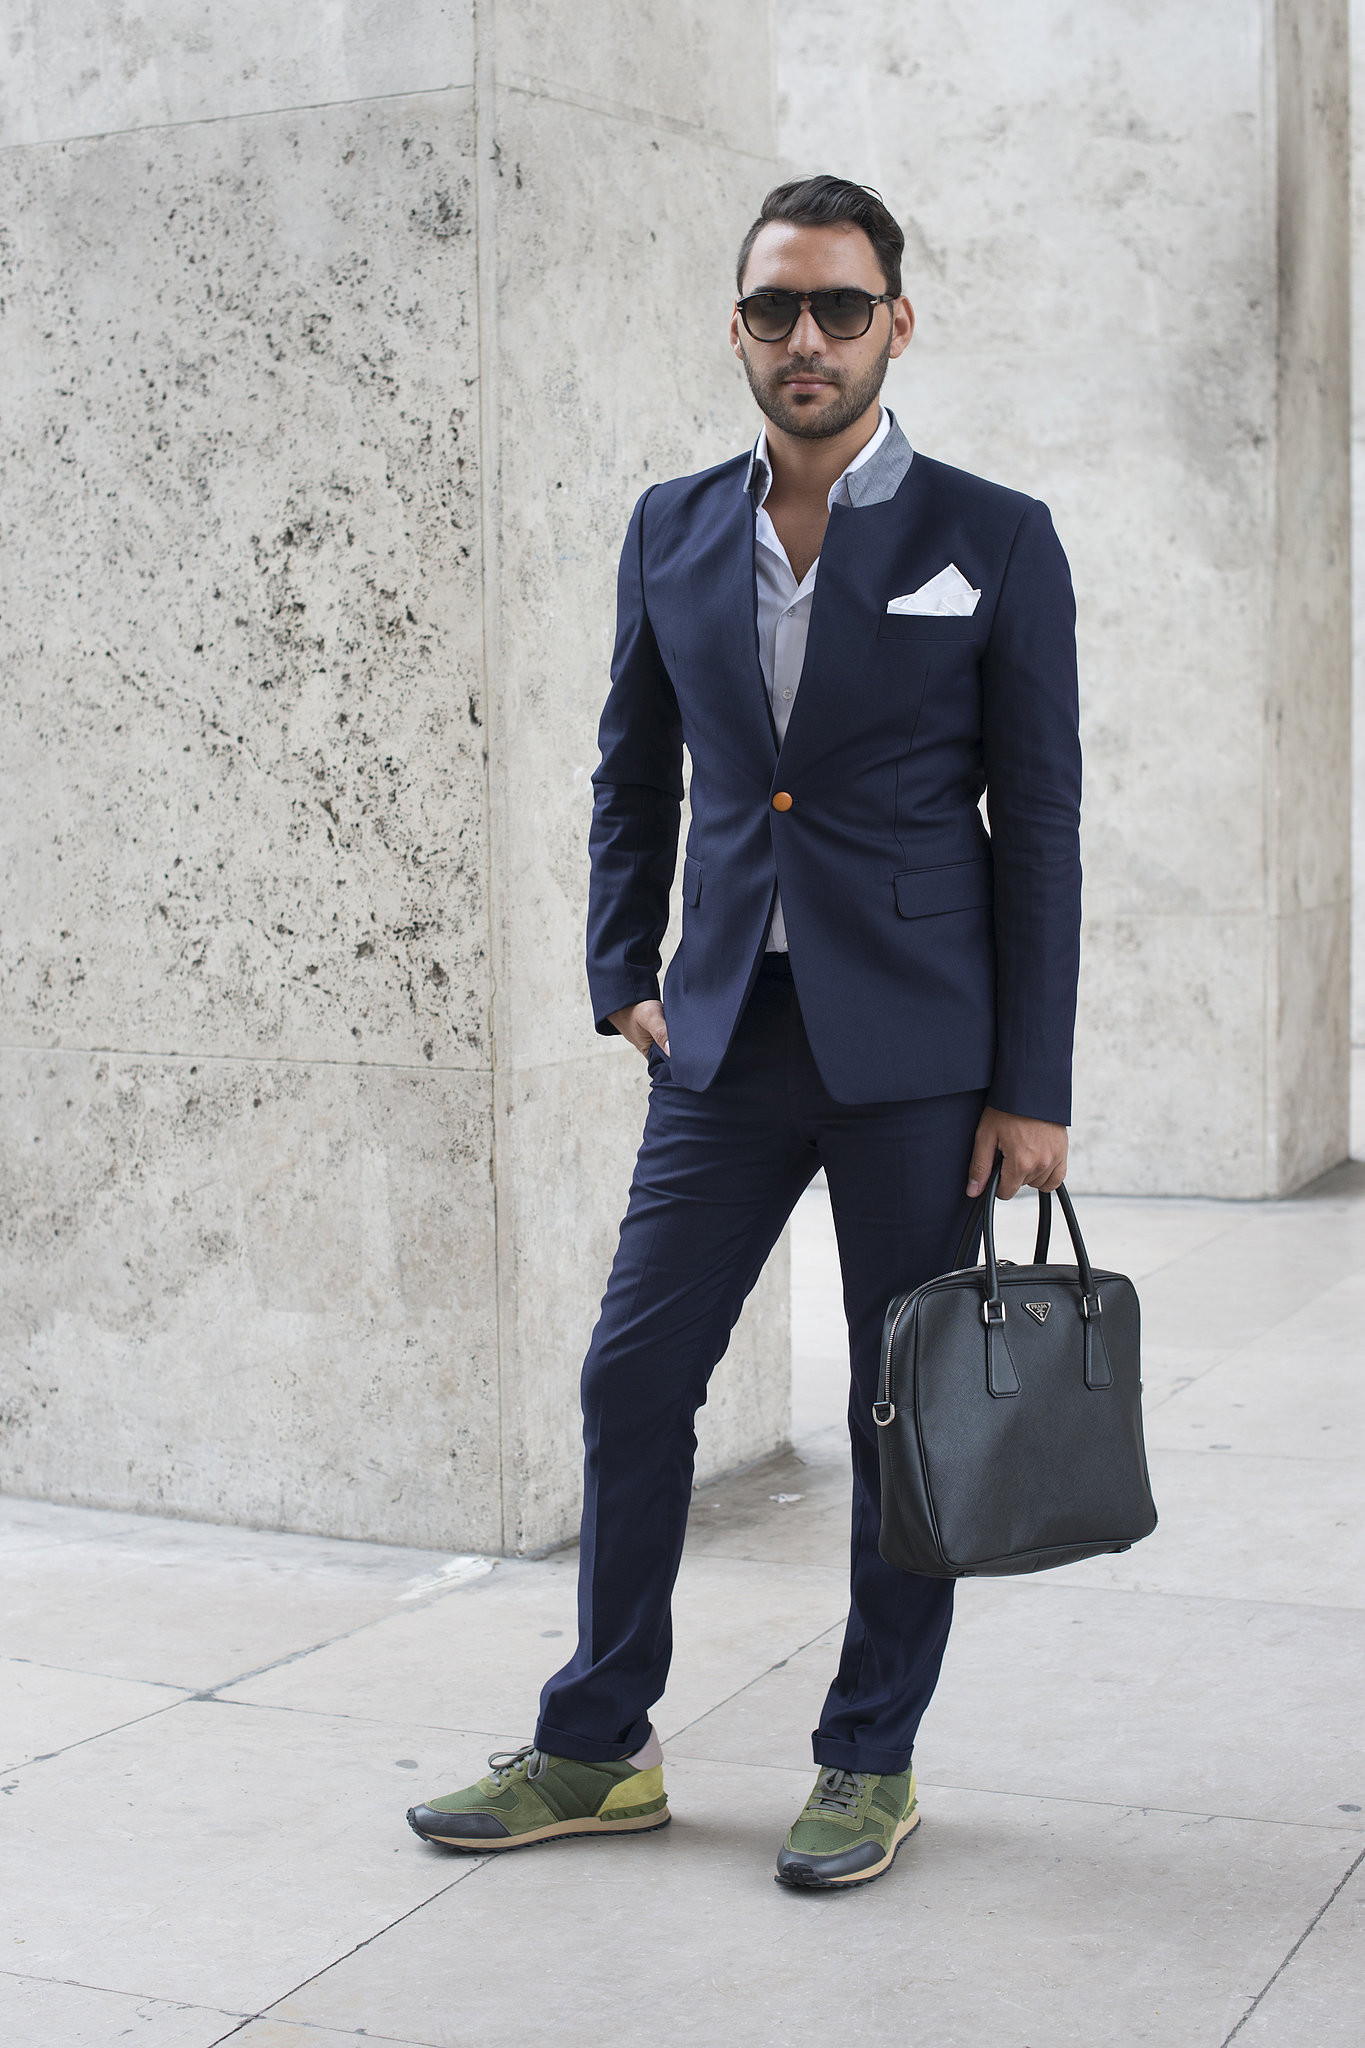 The Staid Navy Suit Feels Personalized With A Pocket Square And His And Hers The Best Street